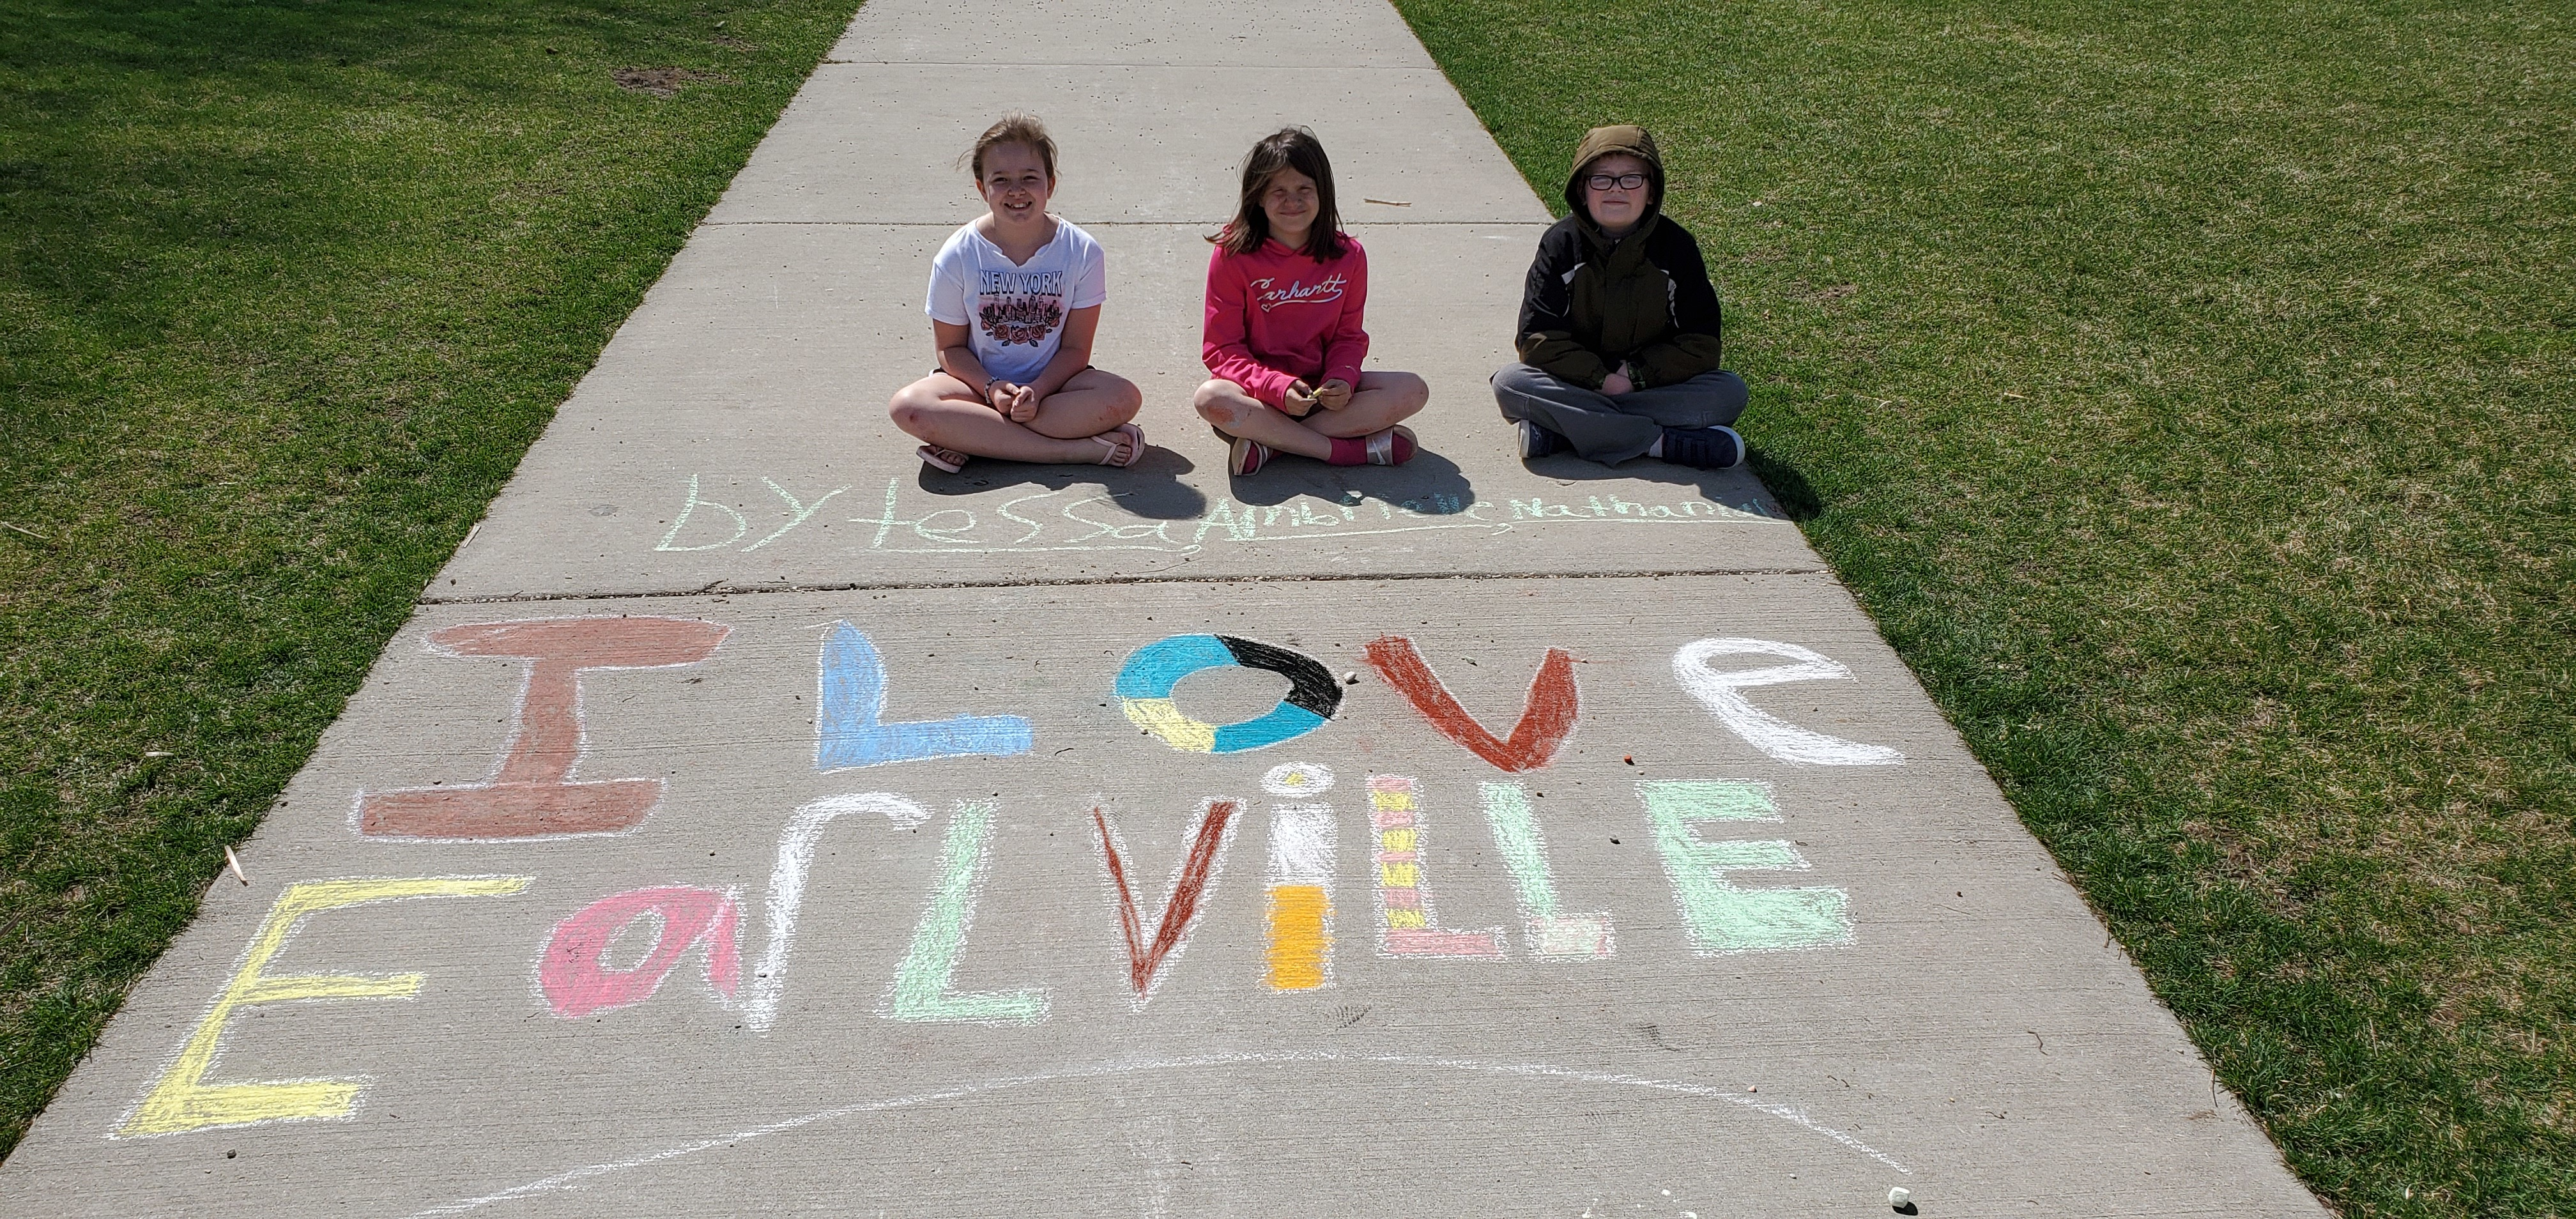 Students pose with a chalk drawing.